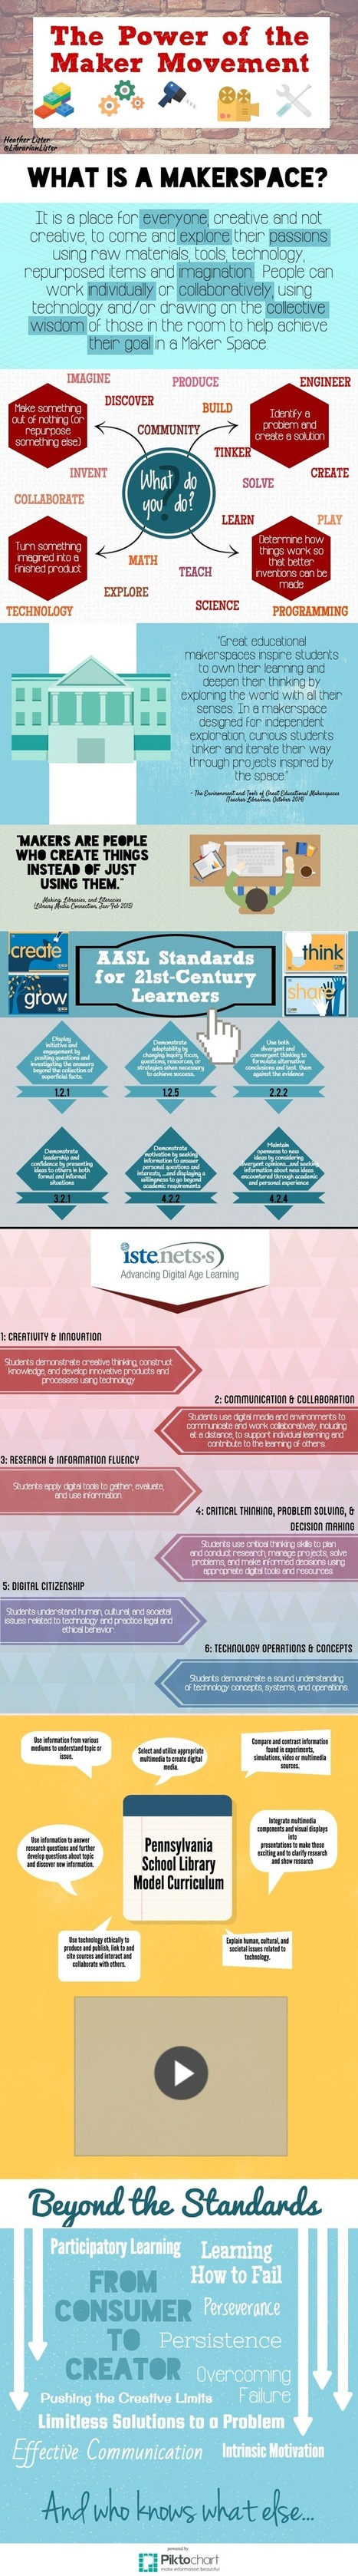 Makerspace Infographic - Heather Lister | Libraries | Scoop.it